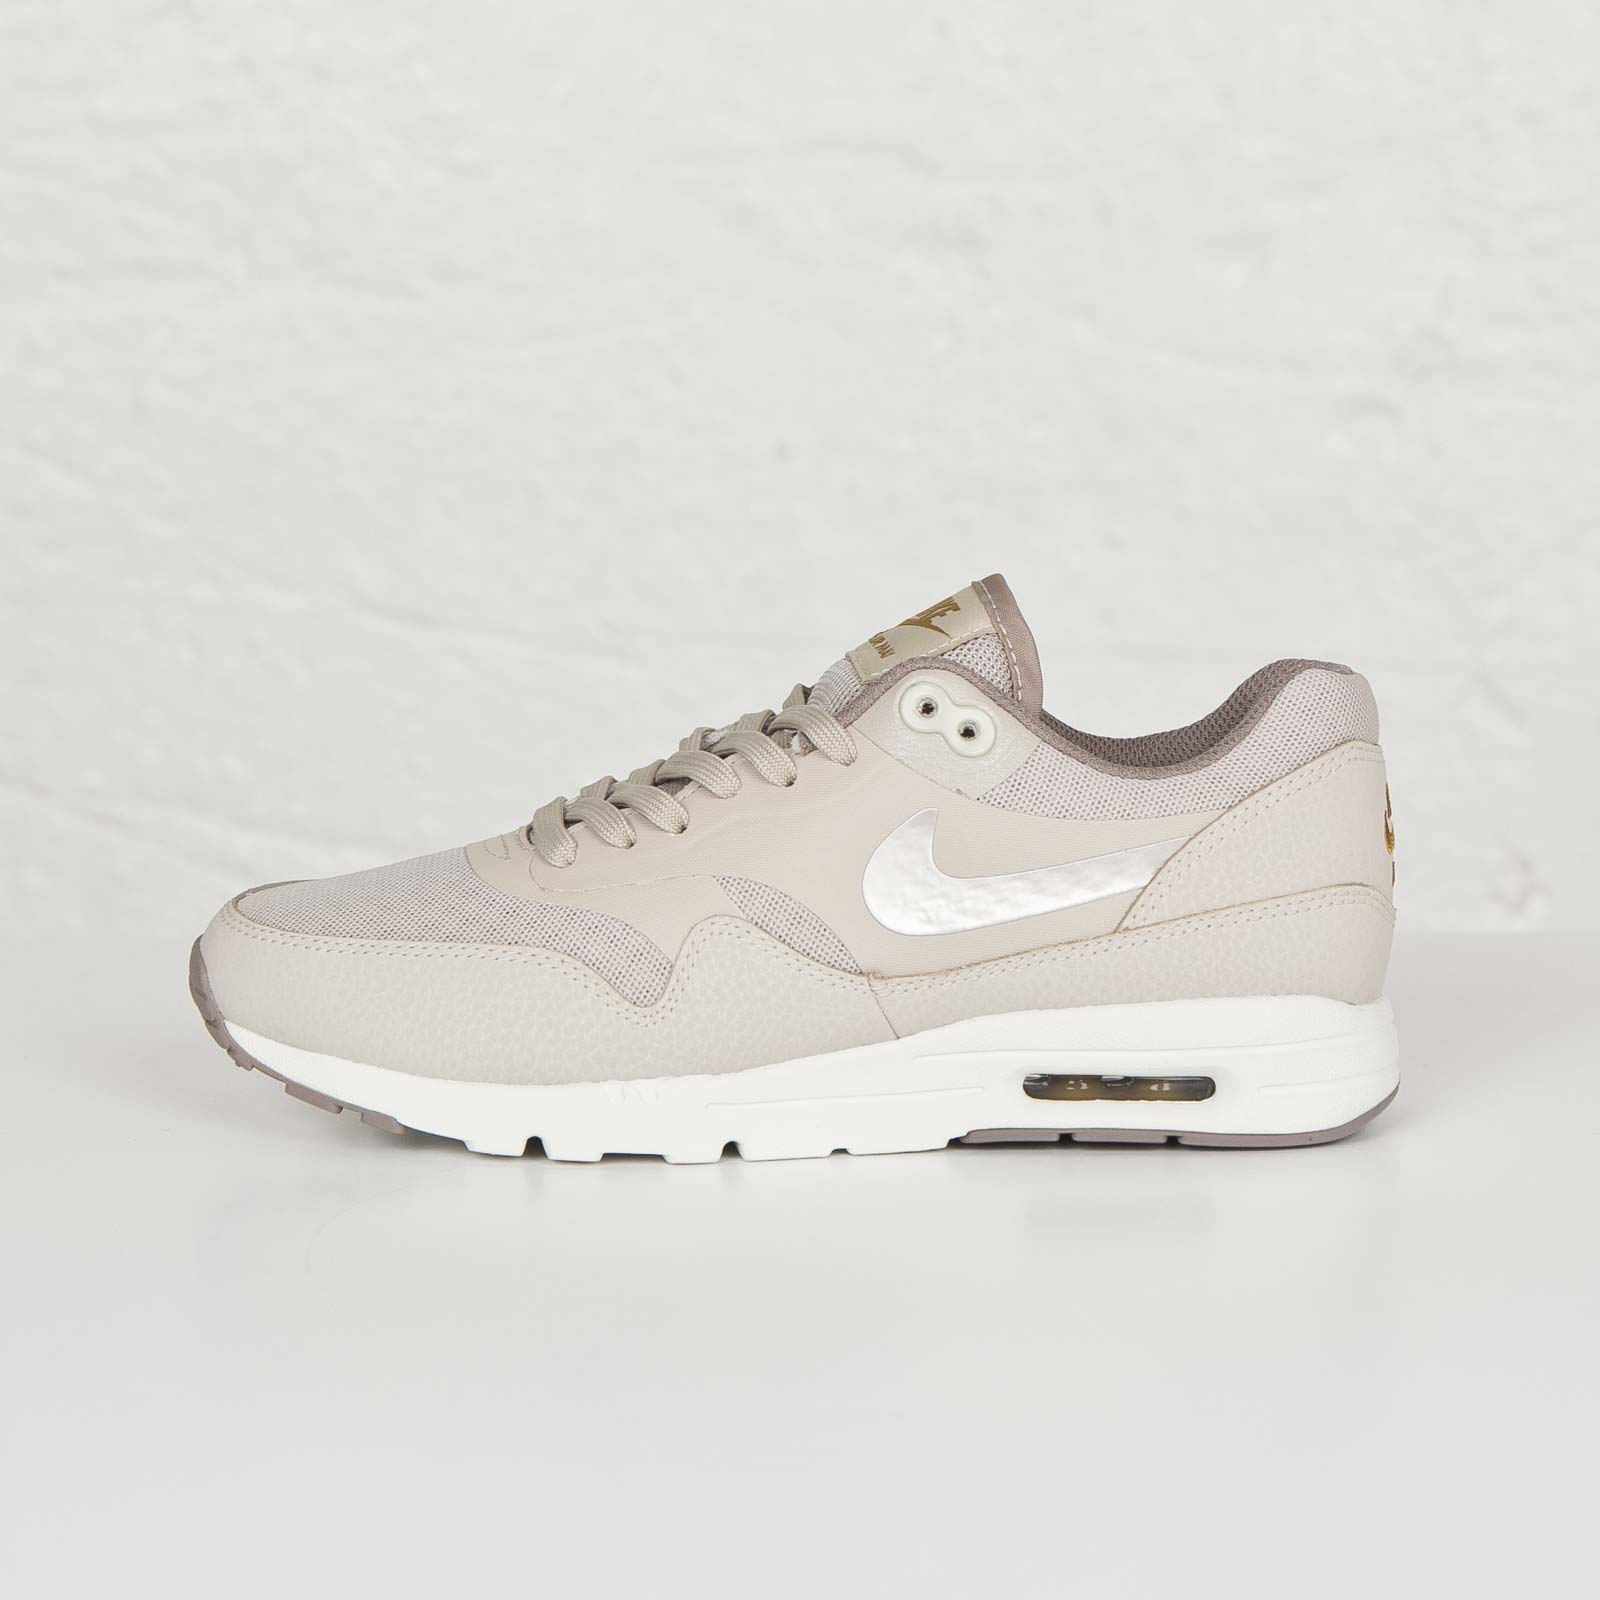 new style 6570a 75be5 Nike Wmns Air Max 1 Ultra Essentials - 704993-200 - Sneakersnstuff ...